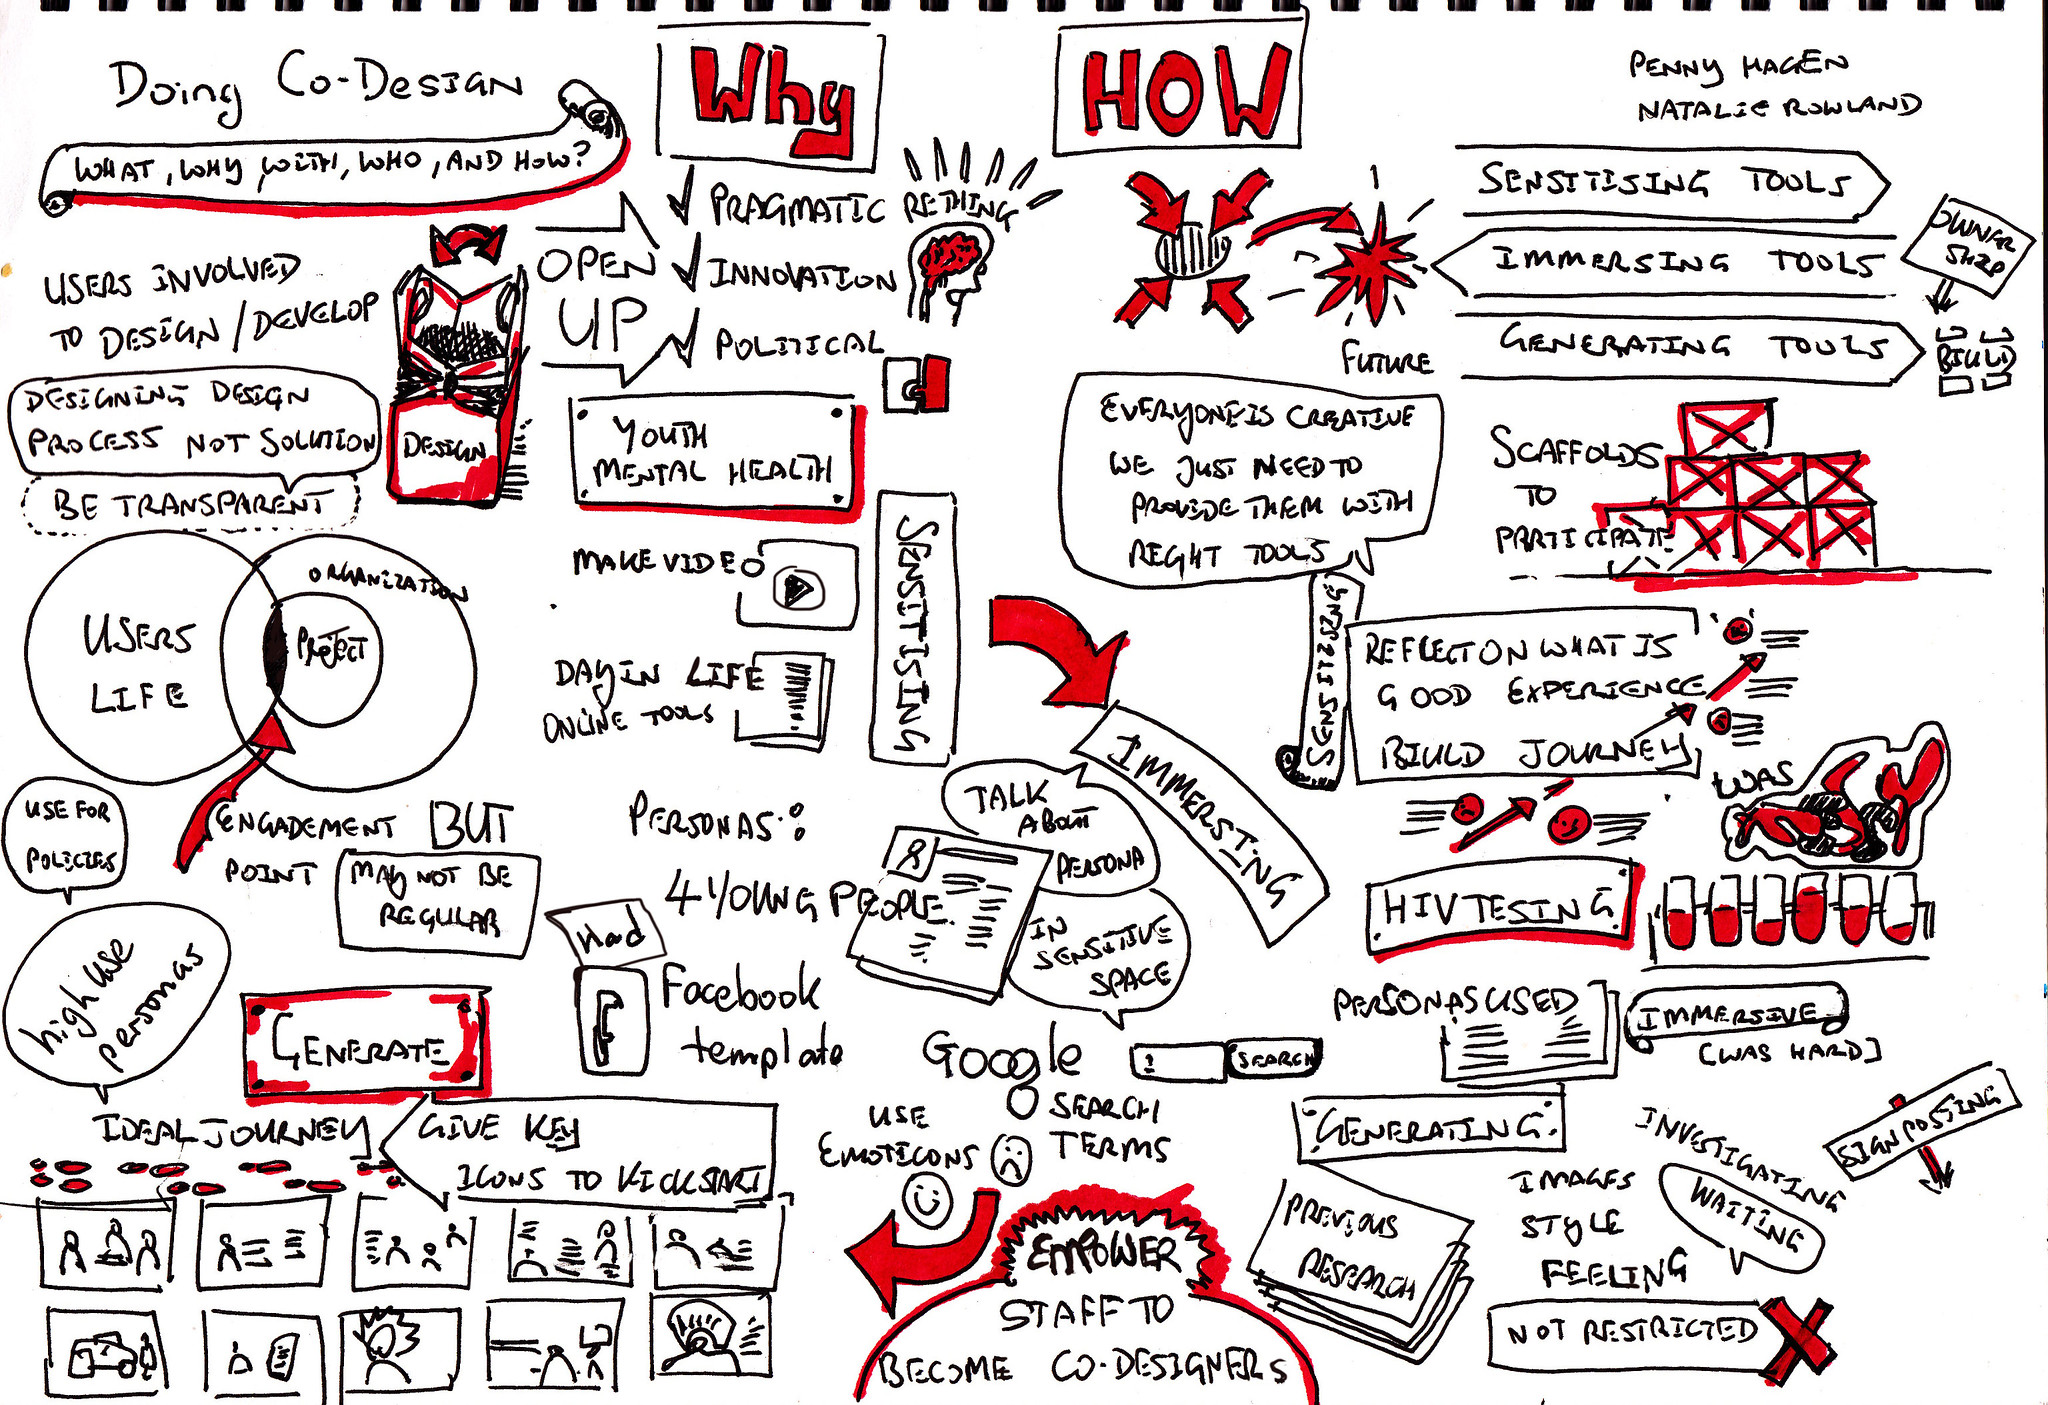 Doing co-design: What, why, with who and how? -  Penny Hagen and Natalie Rowland